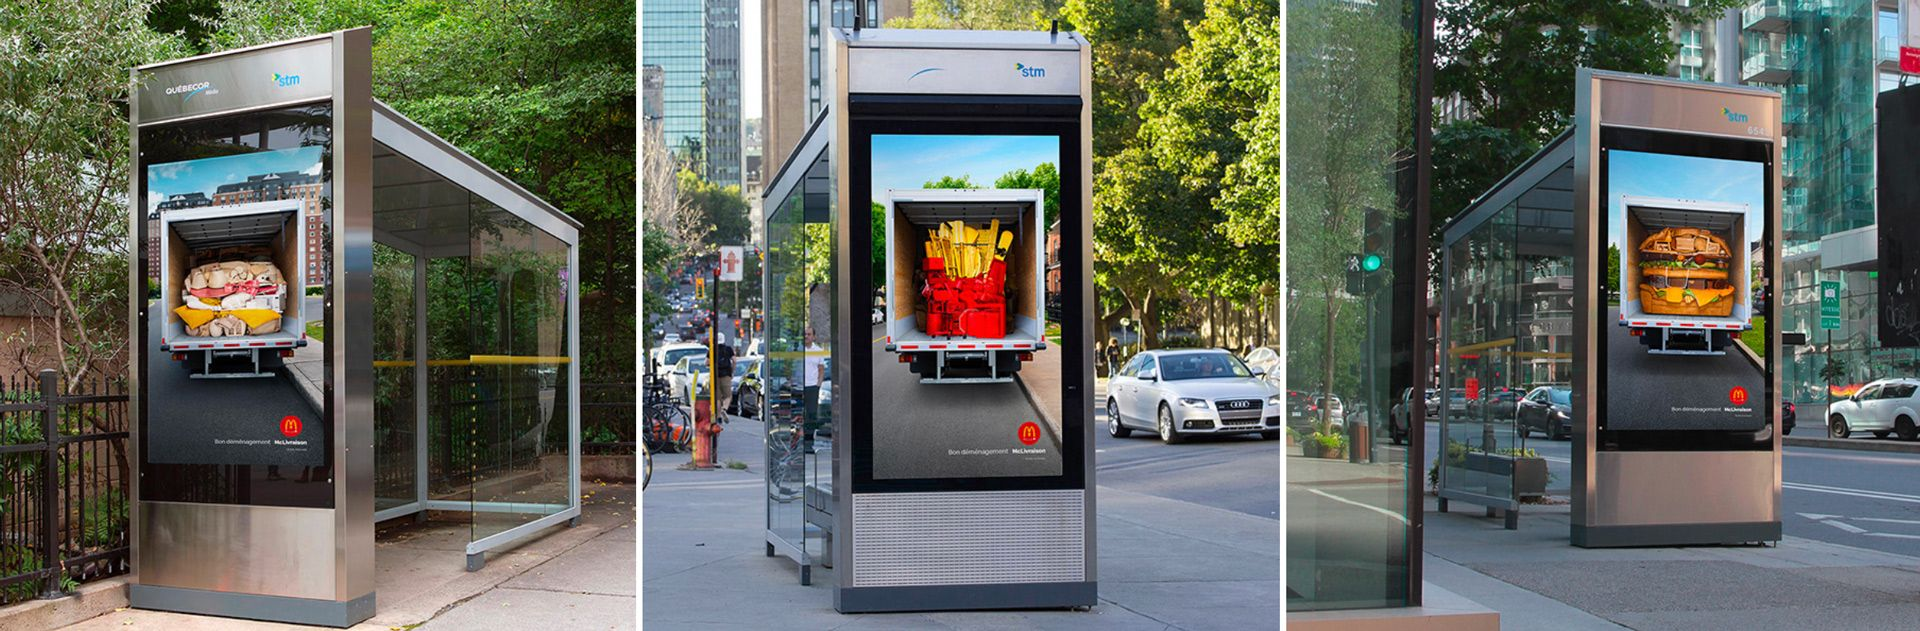 McDonald's happy moving day campaign by Simon Duhamel in bus stops